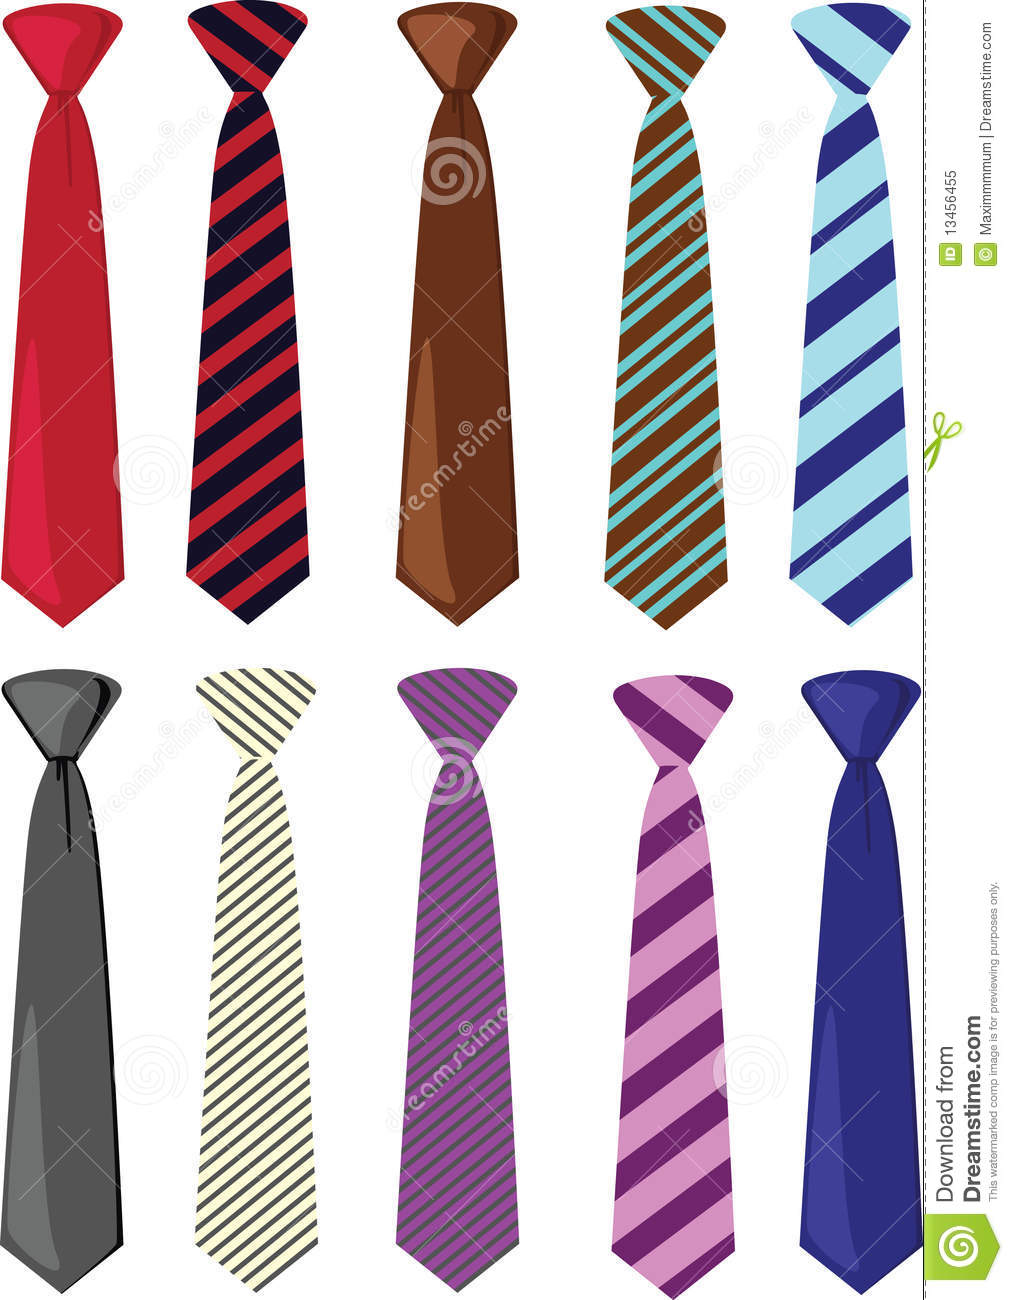 colored ties illustration royalty free stock photo